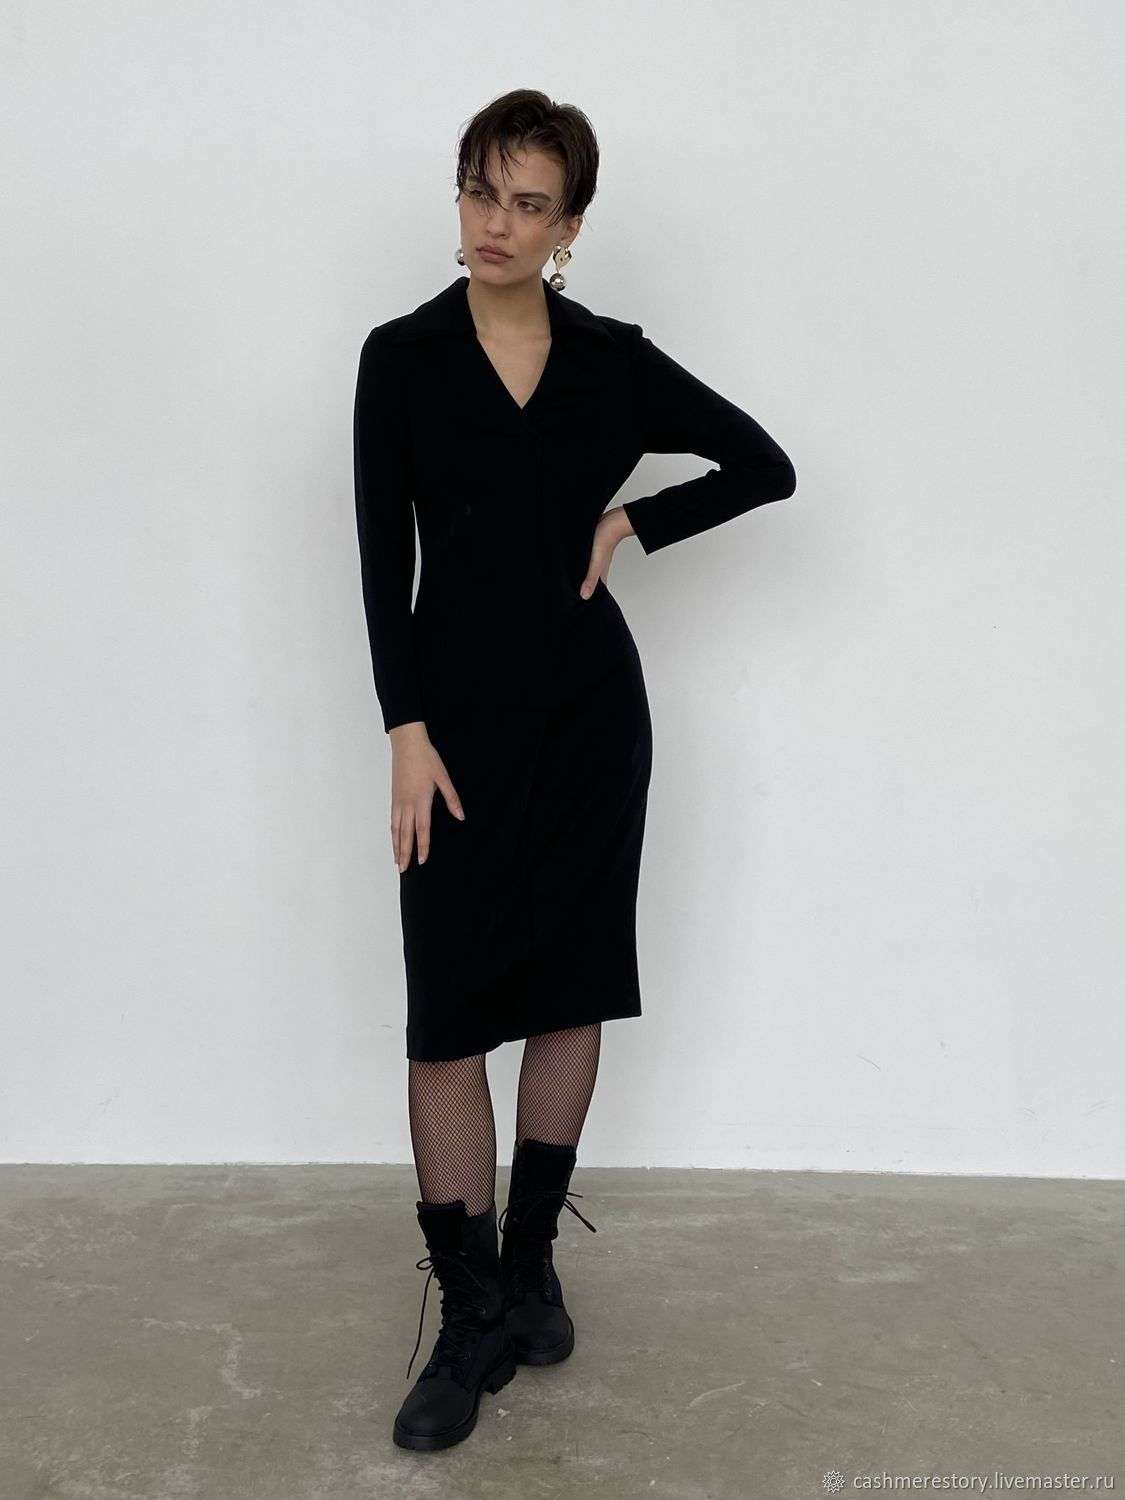 The dress is black with a false front closure, Dresses, Moscow,  Фото №1